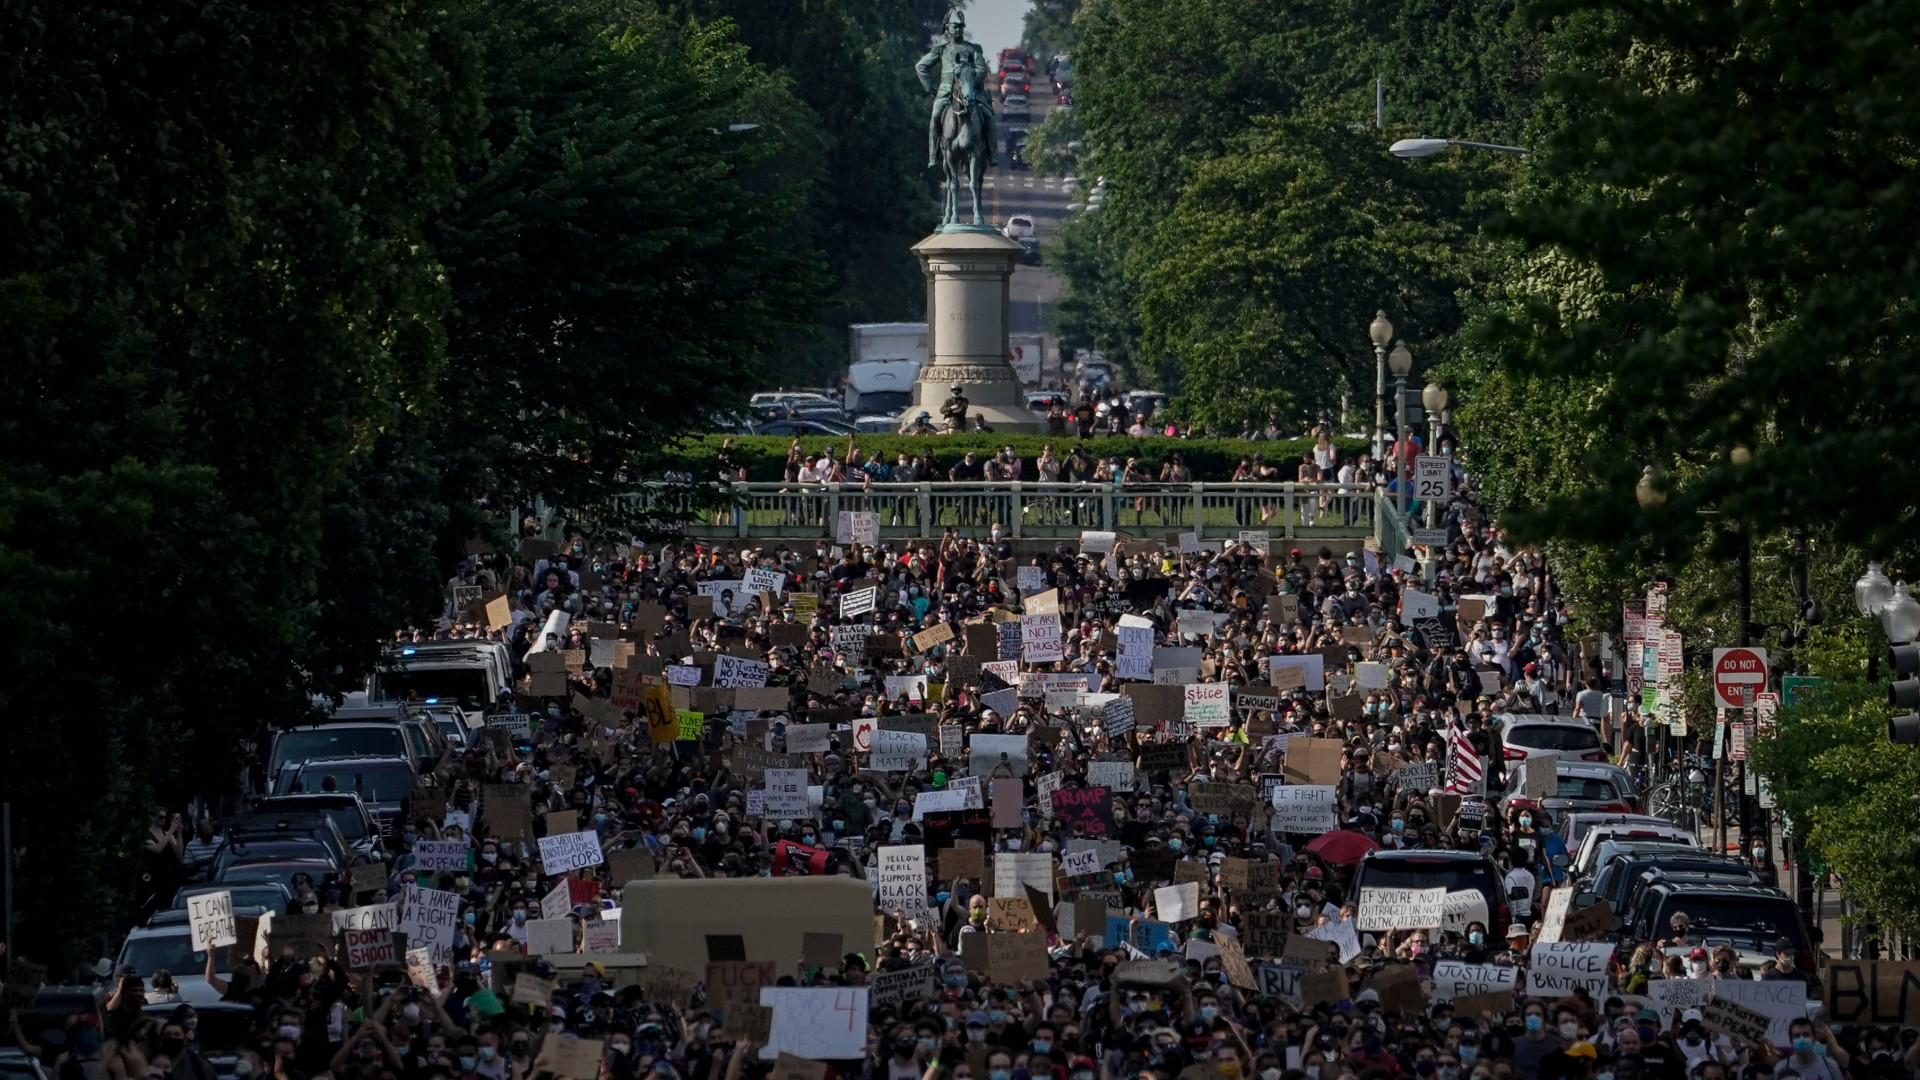 Hundreds of demonstrators march toward Lafayette Park and the White House to protest against police brutality and the death of George Floyd, on June 2, 2020 in Washington, DC. (Drew Angerer/Getty Images)